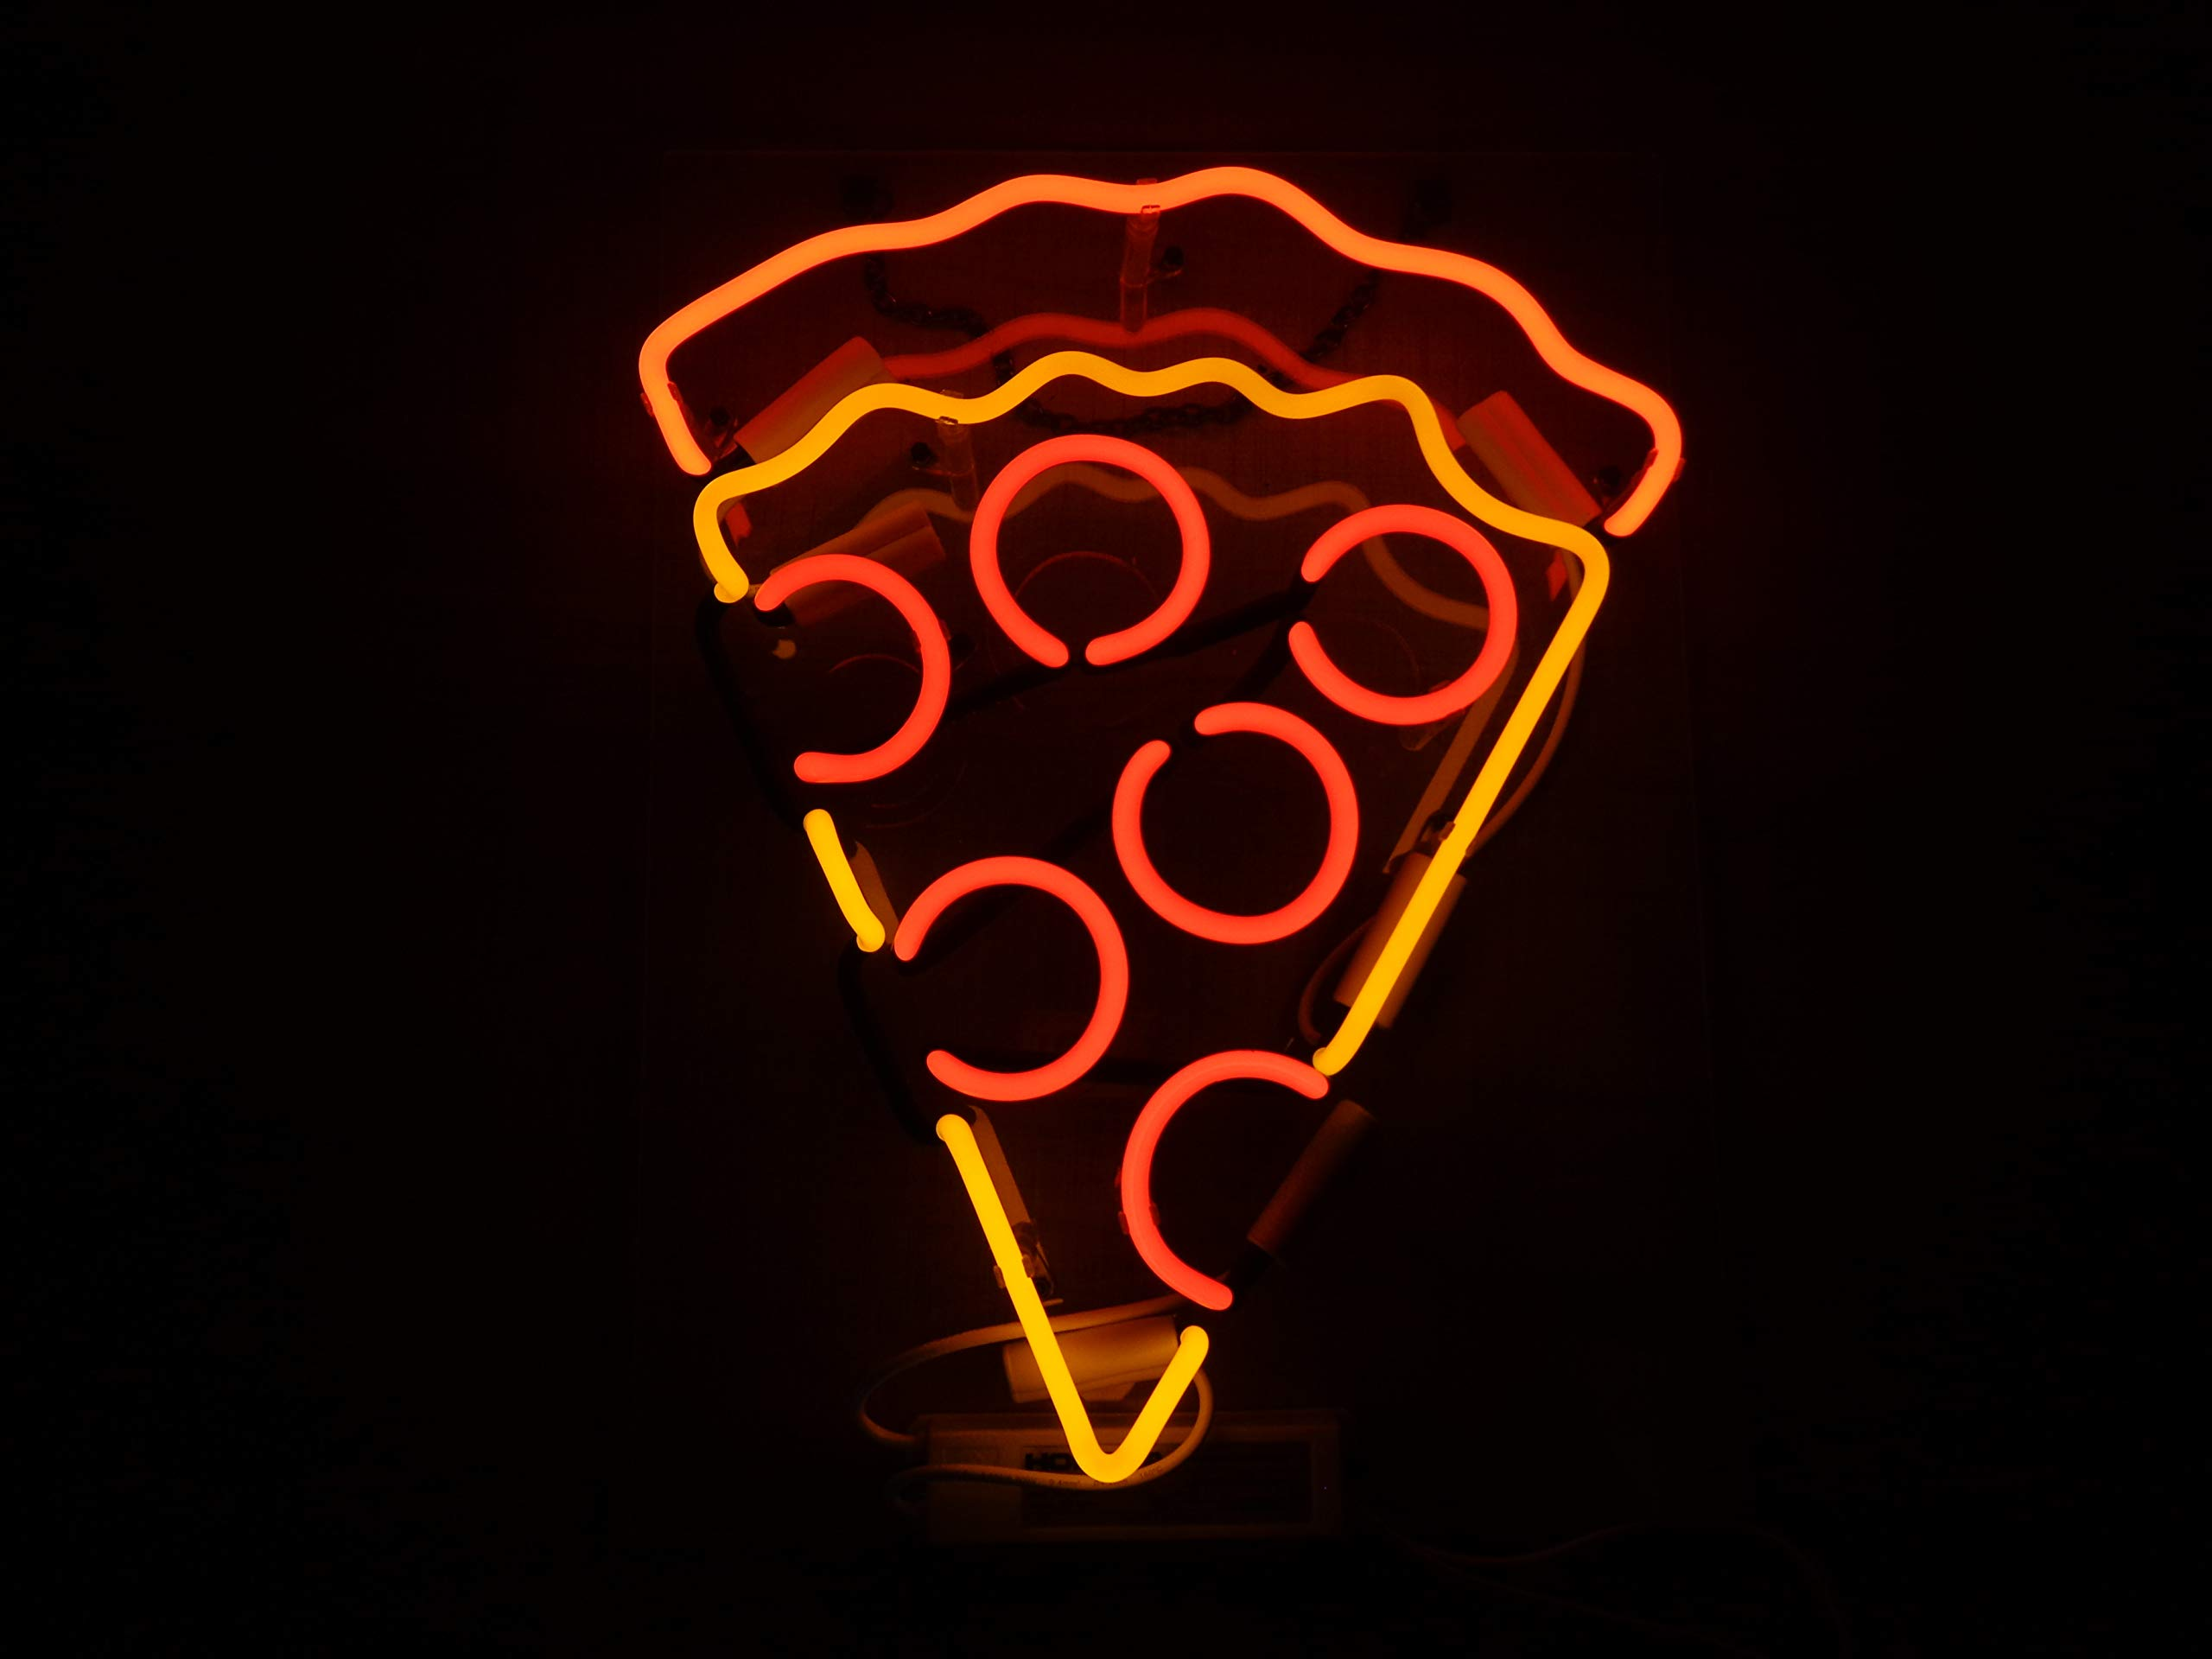 Pizza Acrylic Board Neon Sign 17''X14'' Real Glass Neon Sign Light for Beer Bar Pub Garage Room.